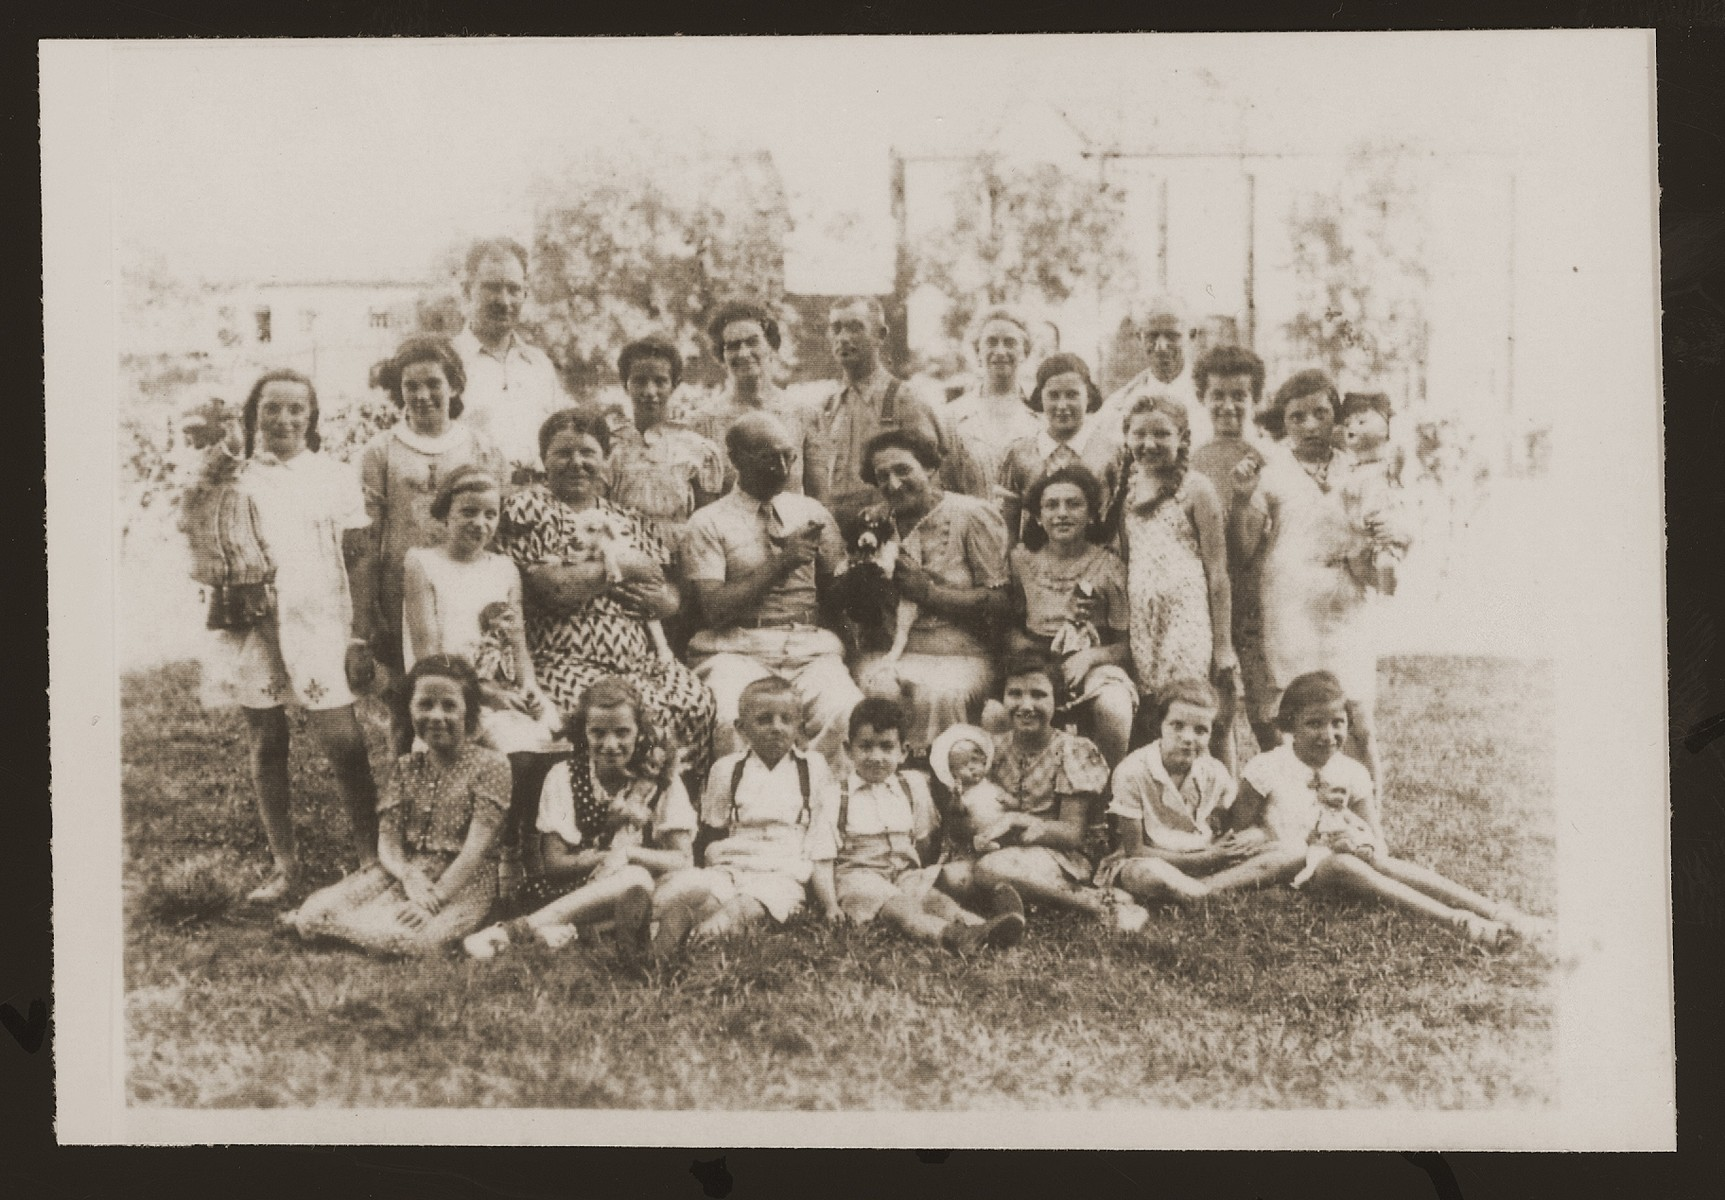 Jewish refugees in the Kinchow refugee camp near Shanghai at the birthday party of Hannelore Mansbacher (now Weill).  Hannelore is seated with her doll on the left in the second row, and Blanka Sender (now Mohtes), is seated with a doll third from right in the second row.  Sender's parents are standing in the last row and Julius and Kaethe Mansbacher, Hannelore's parents, are standing on the right in the back row.  Pictured in the back row, center, is  Rudolf Reif, who was Heimleiter (warden) at the Kinchow refugee camp.